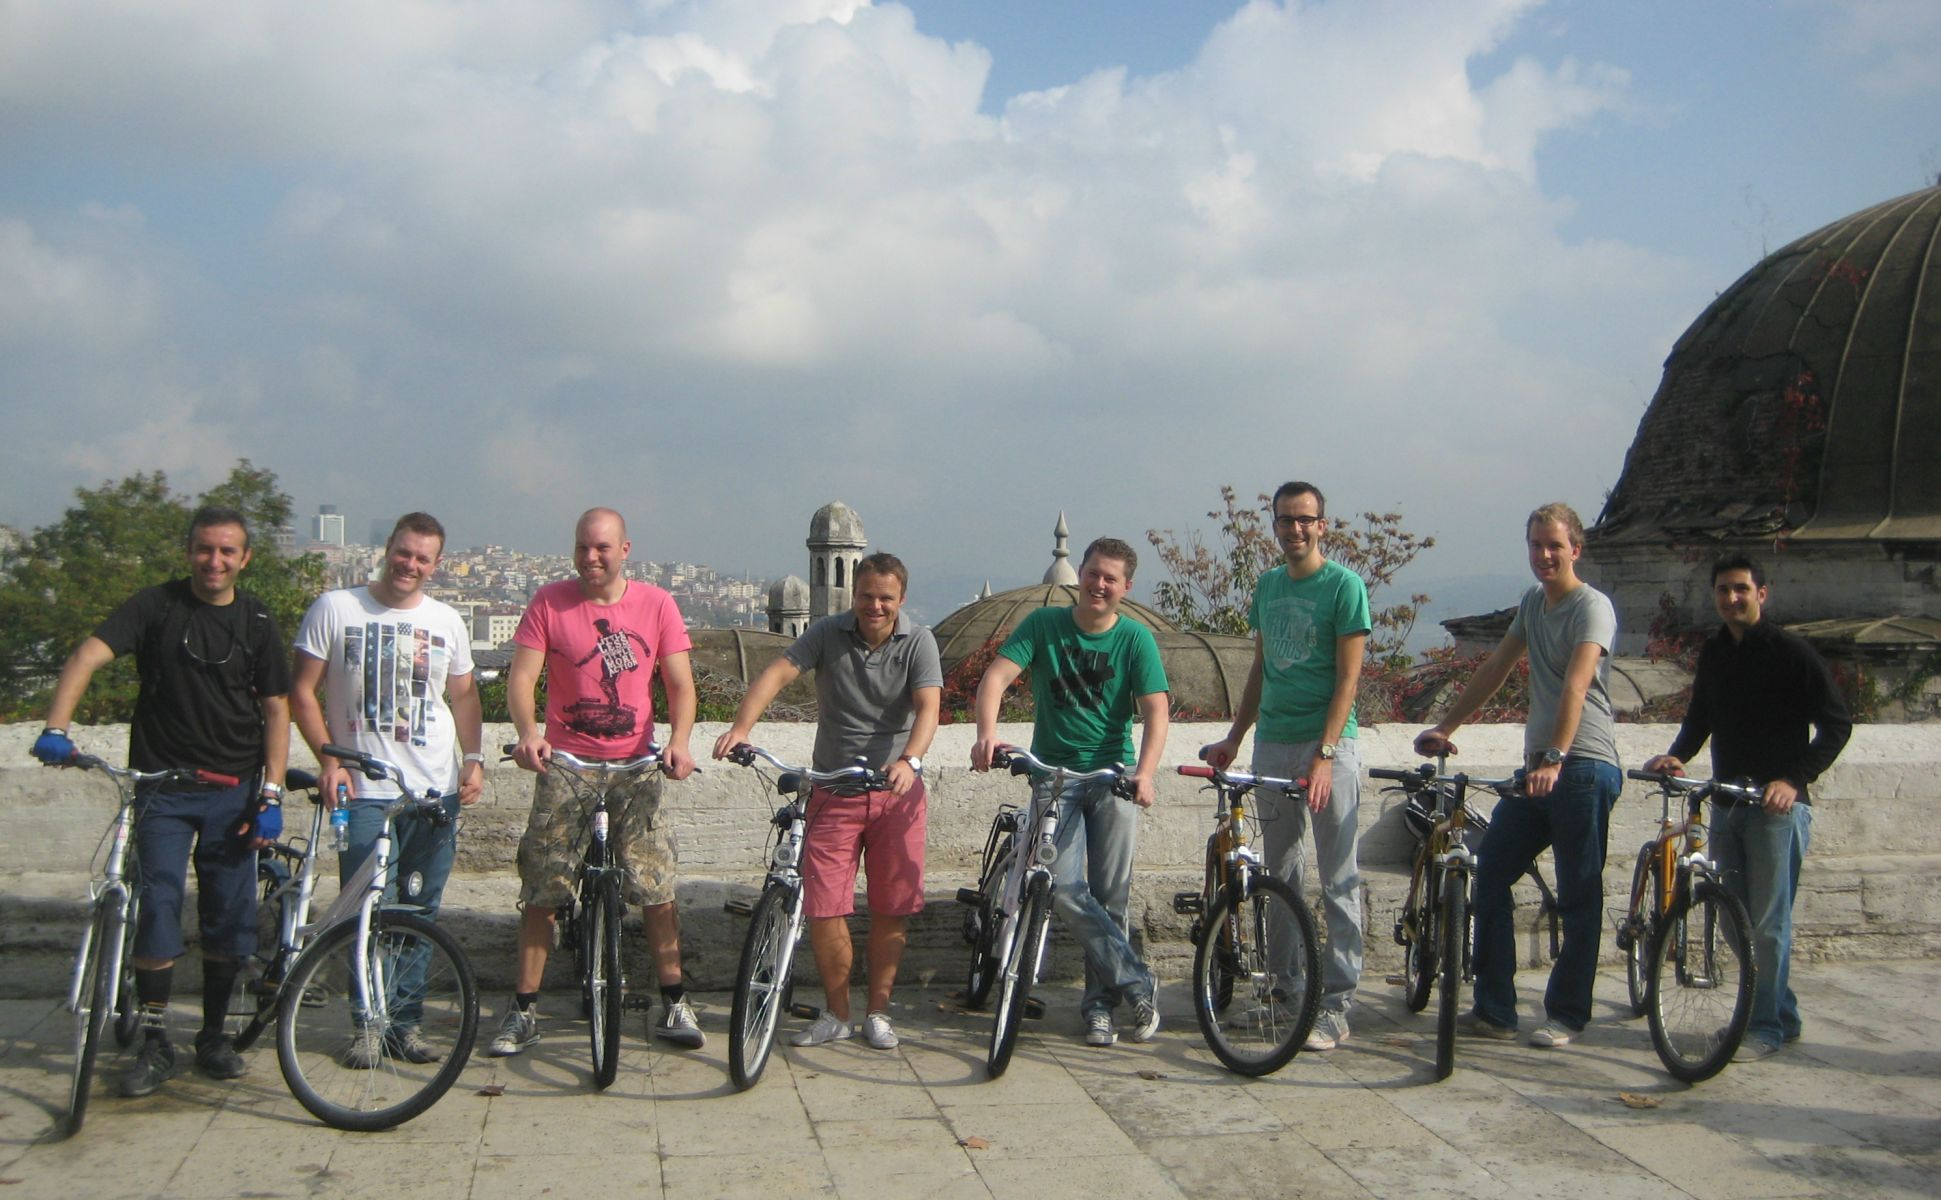 Group photo at Suleymaniye Mosque Old City Bike tour